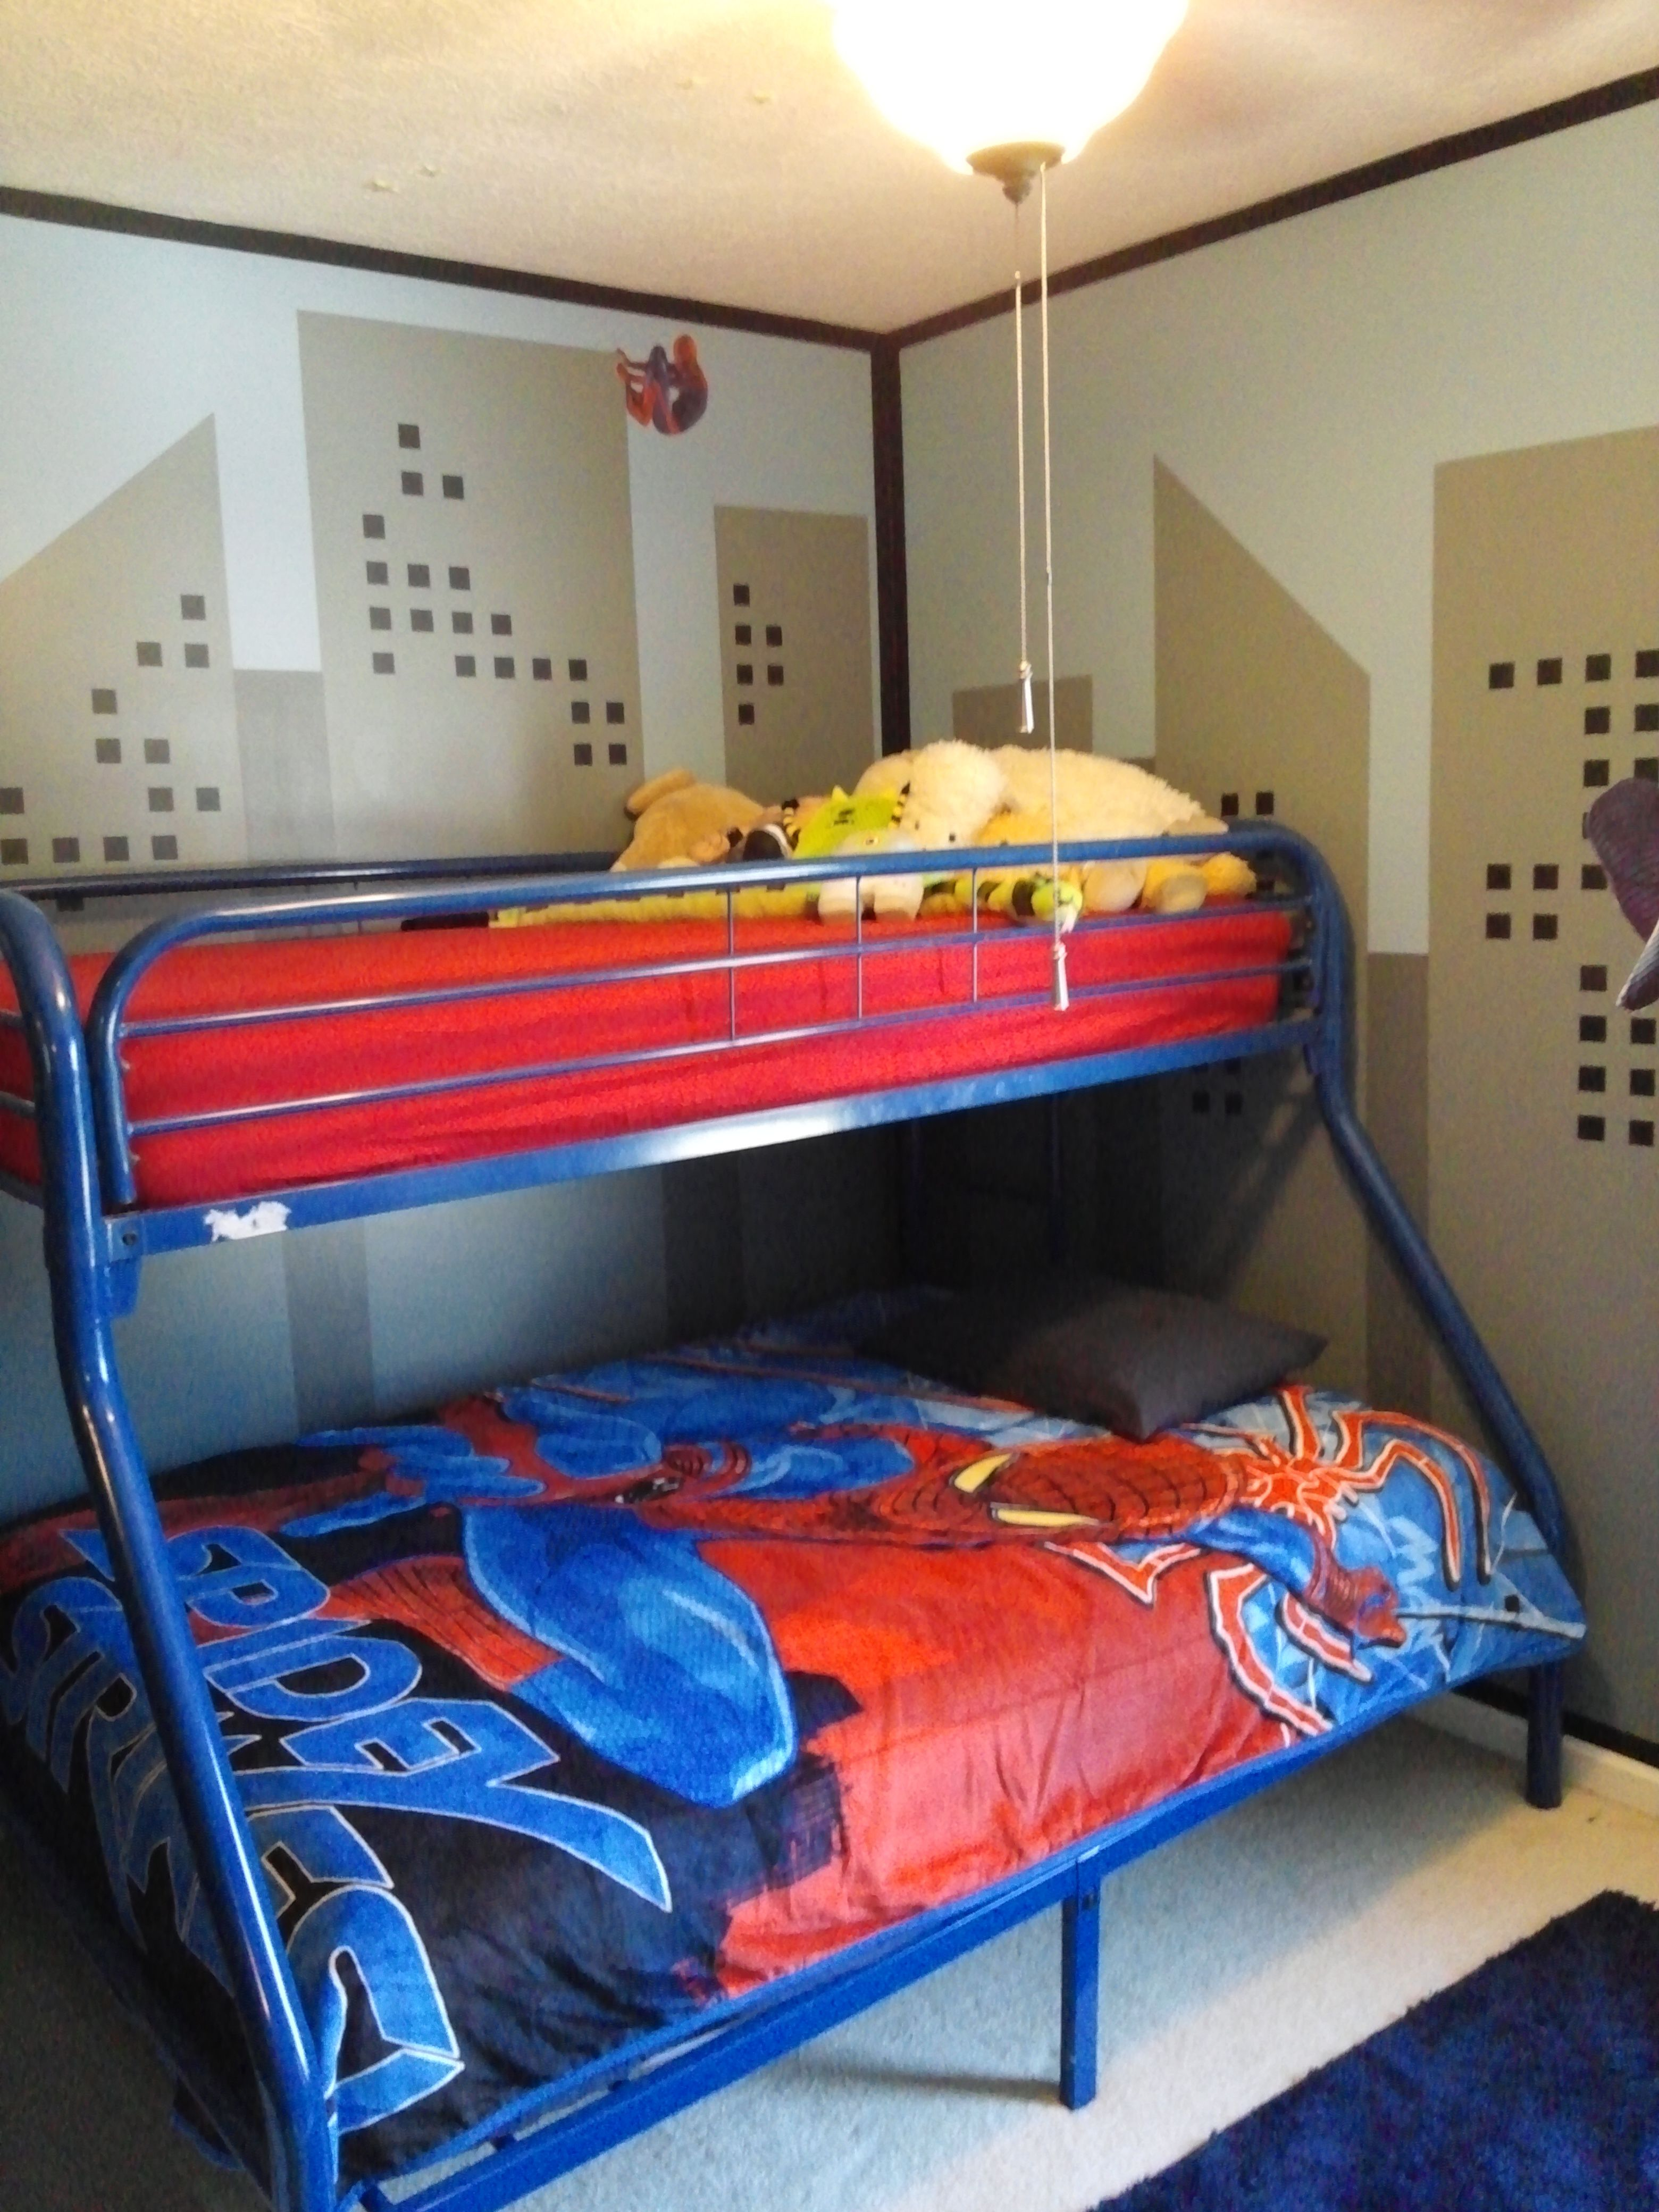 SpiderMan walls outlined to give comic book feel. Bed